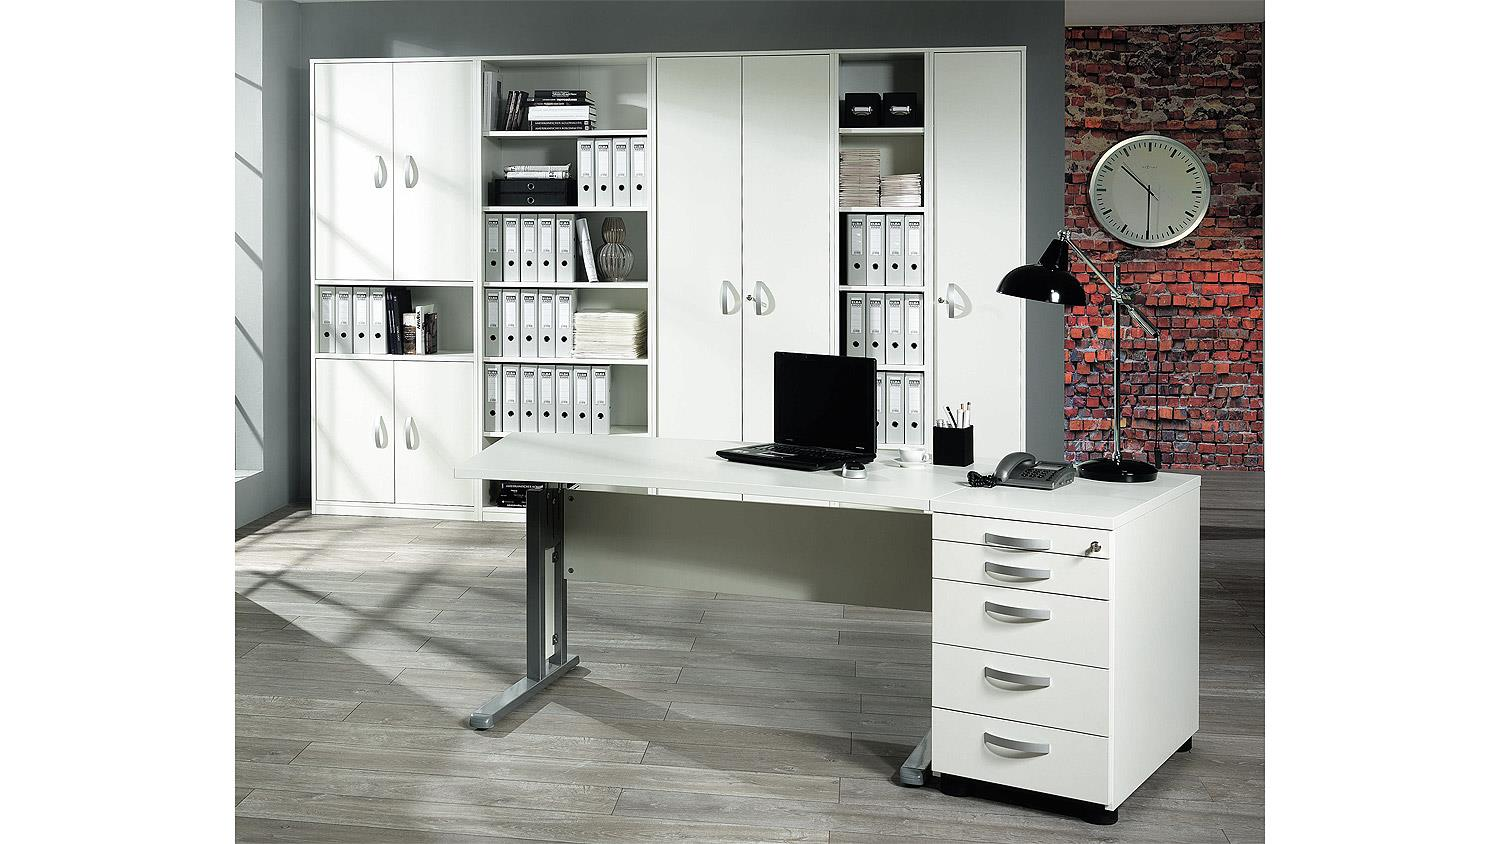 b roset jobexpress home office b rom bel in wei von wellem bel. Black Bedroom Furniture Sets. Home Design Ideas